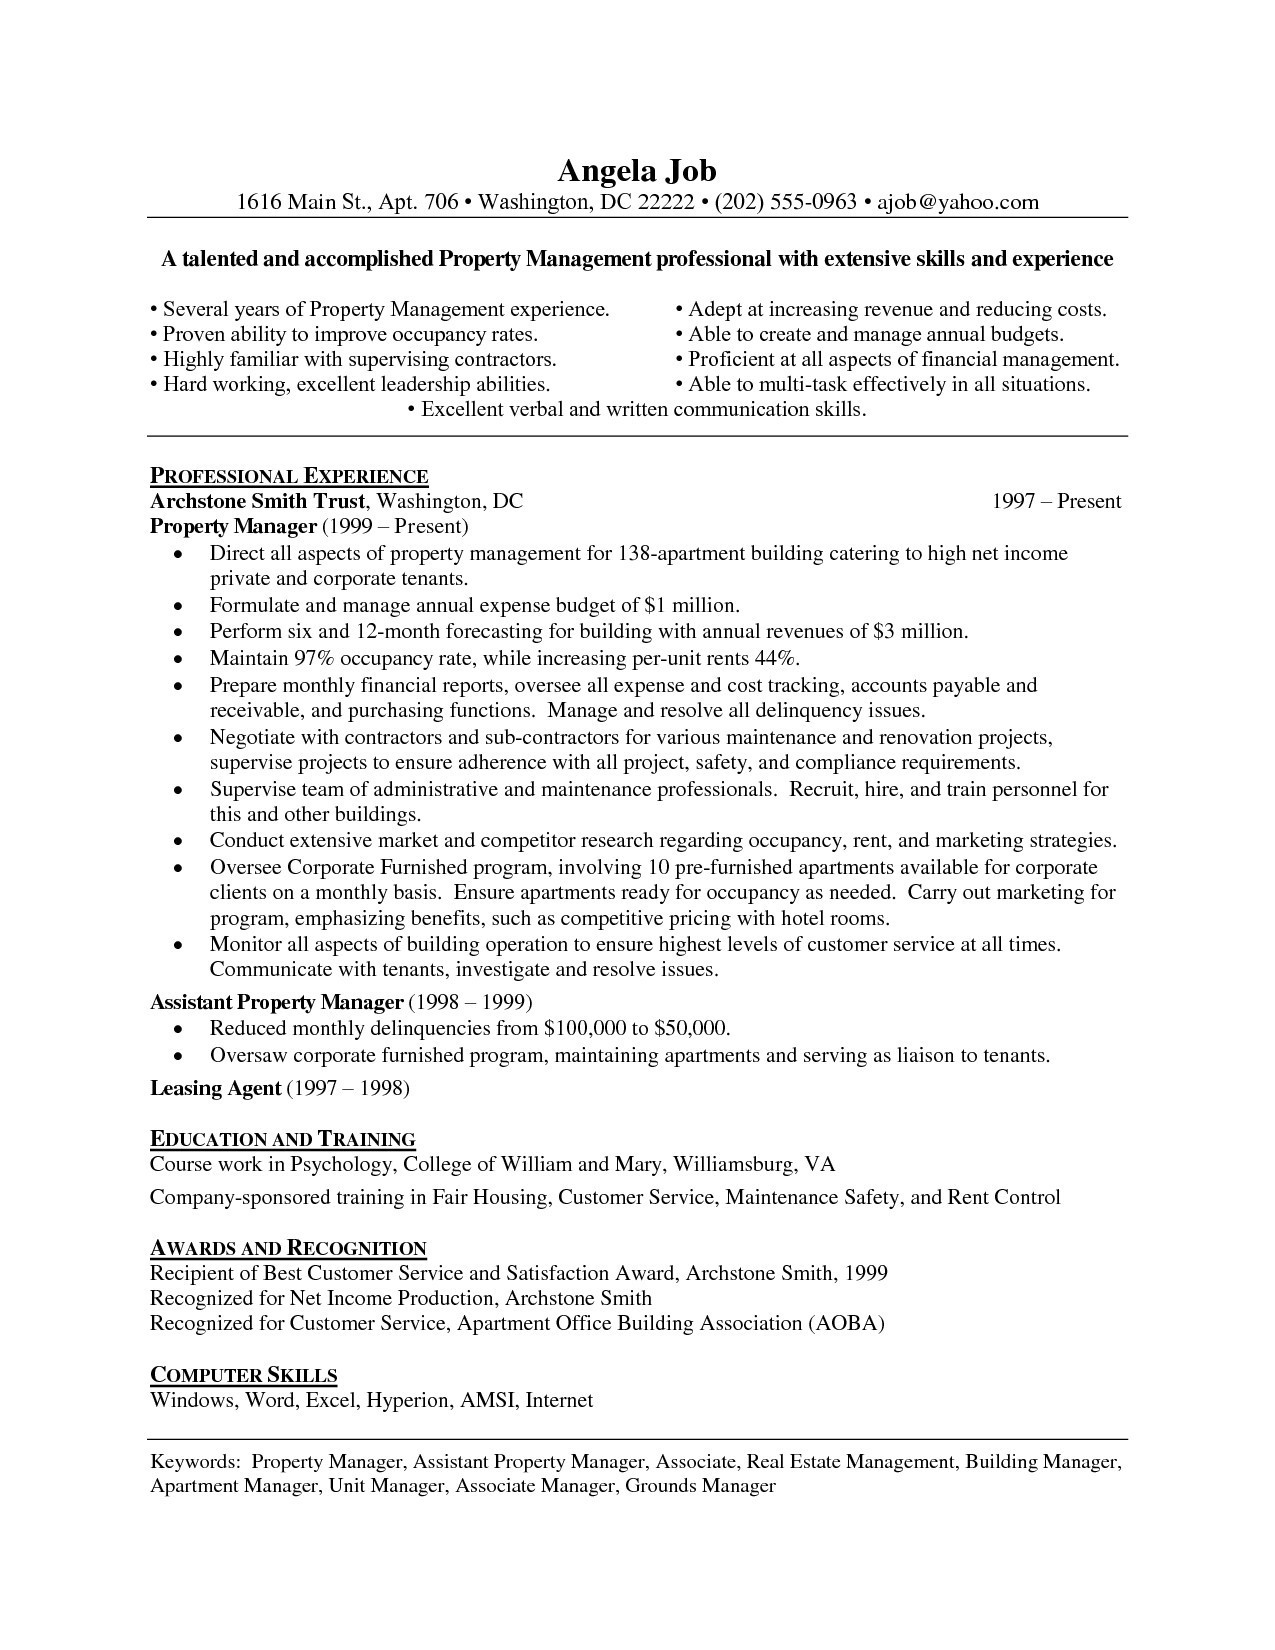 assistant property manager resume objective Collection-Property Management Resume Examples Reference Assistant Property Manager Resume Sample Beautiful Insurance Resumes 12-e